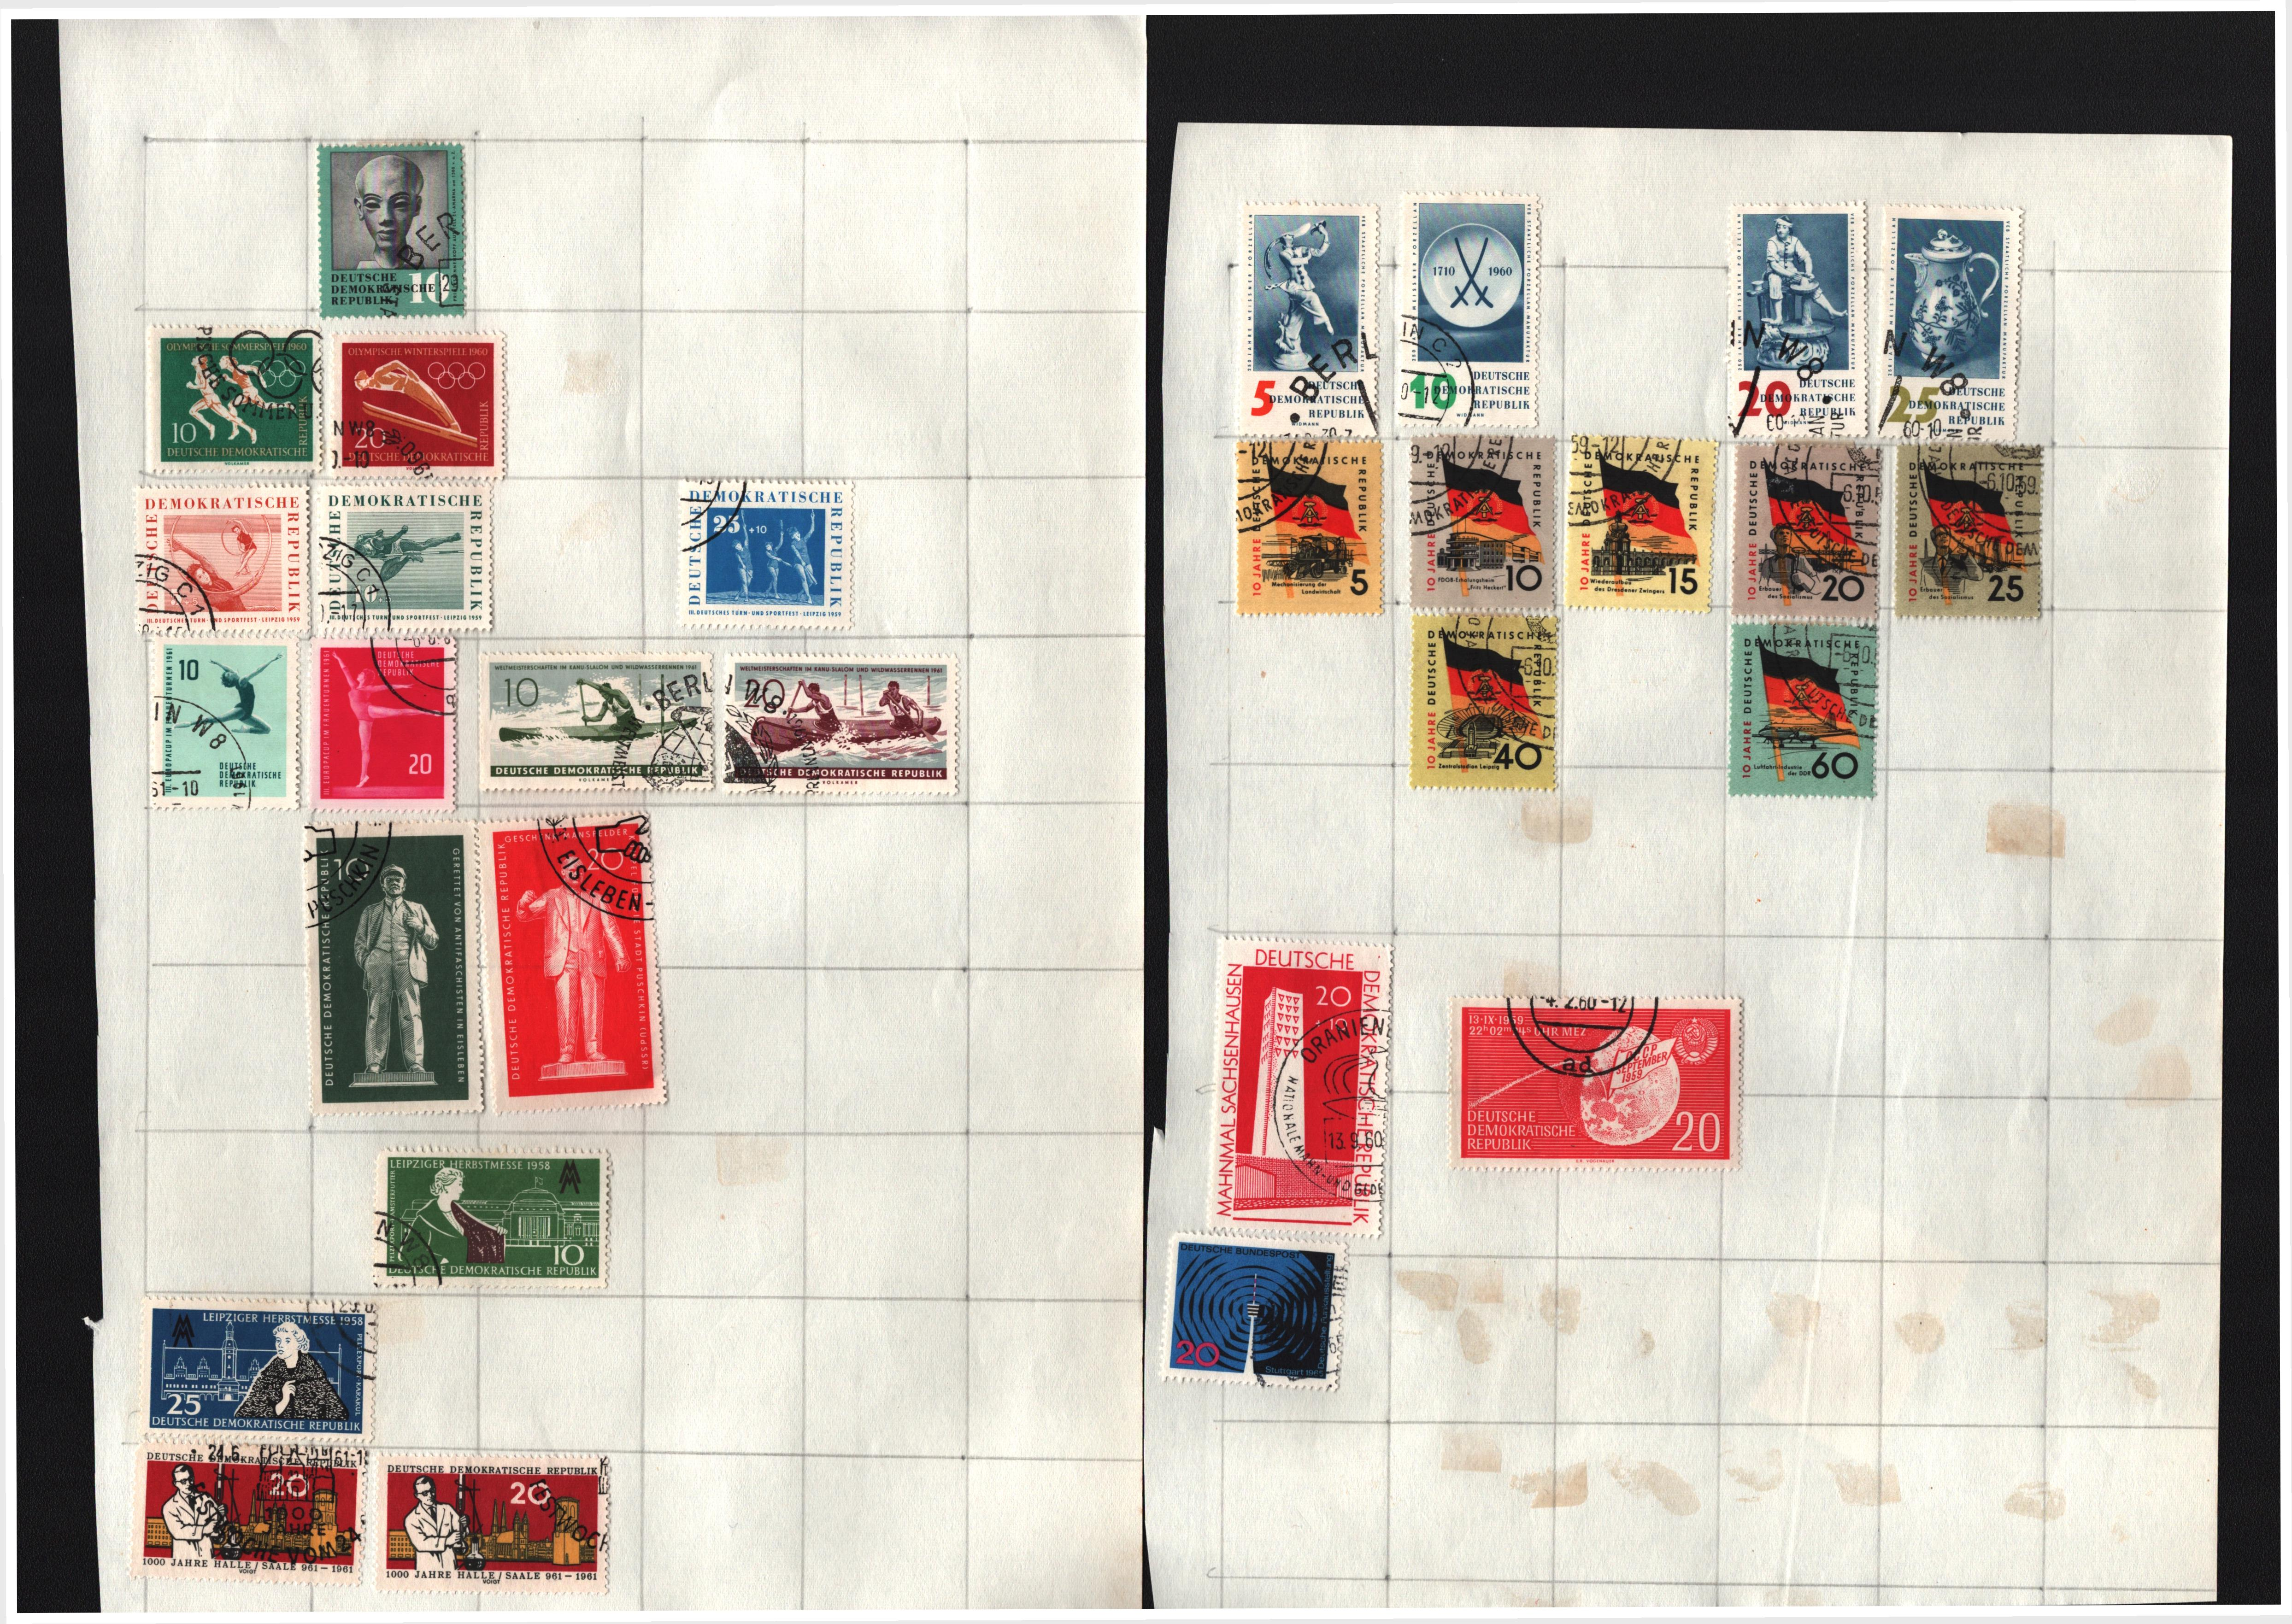 World stamp collection on 22 loose pages. Includes East Germany, Thailand, Morocco, United Nations